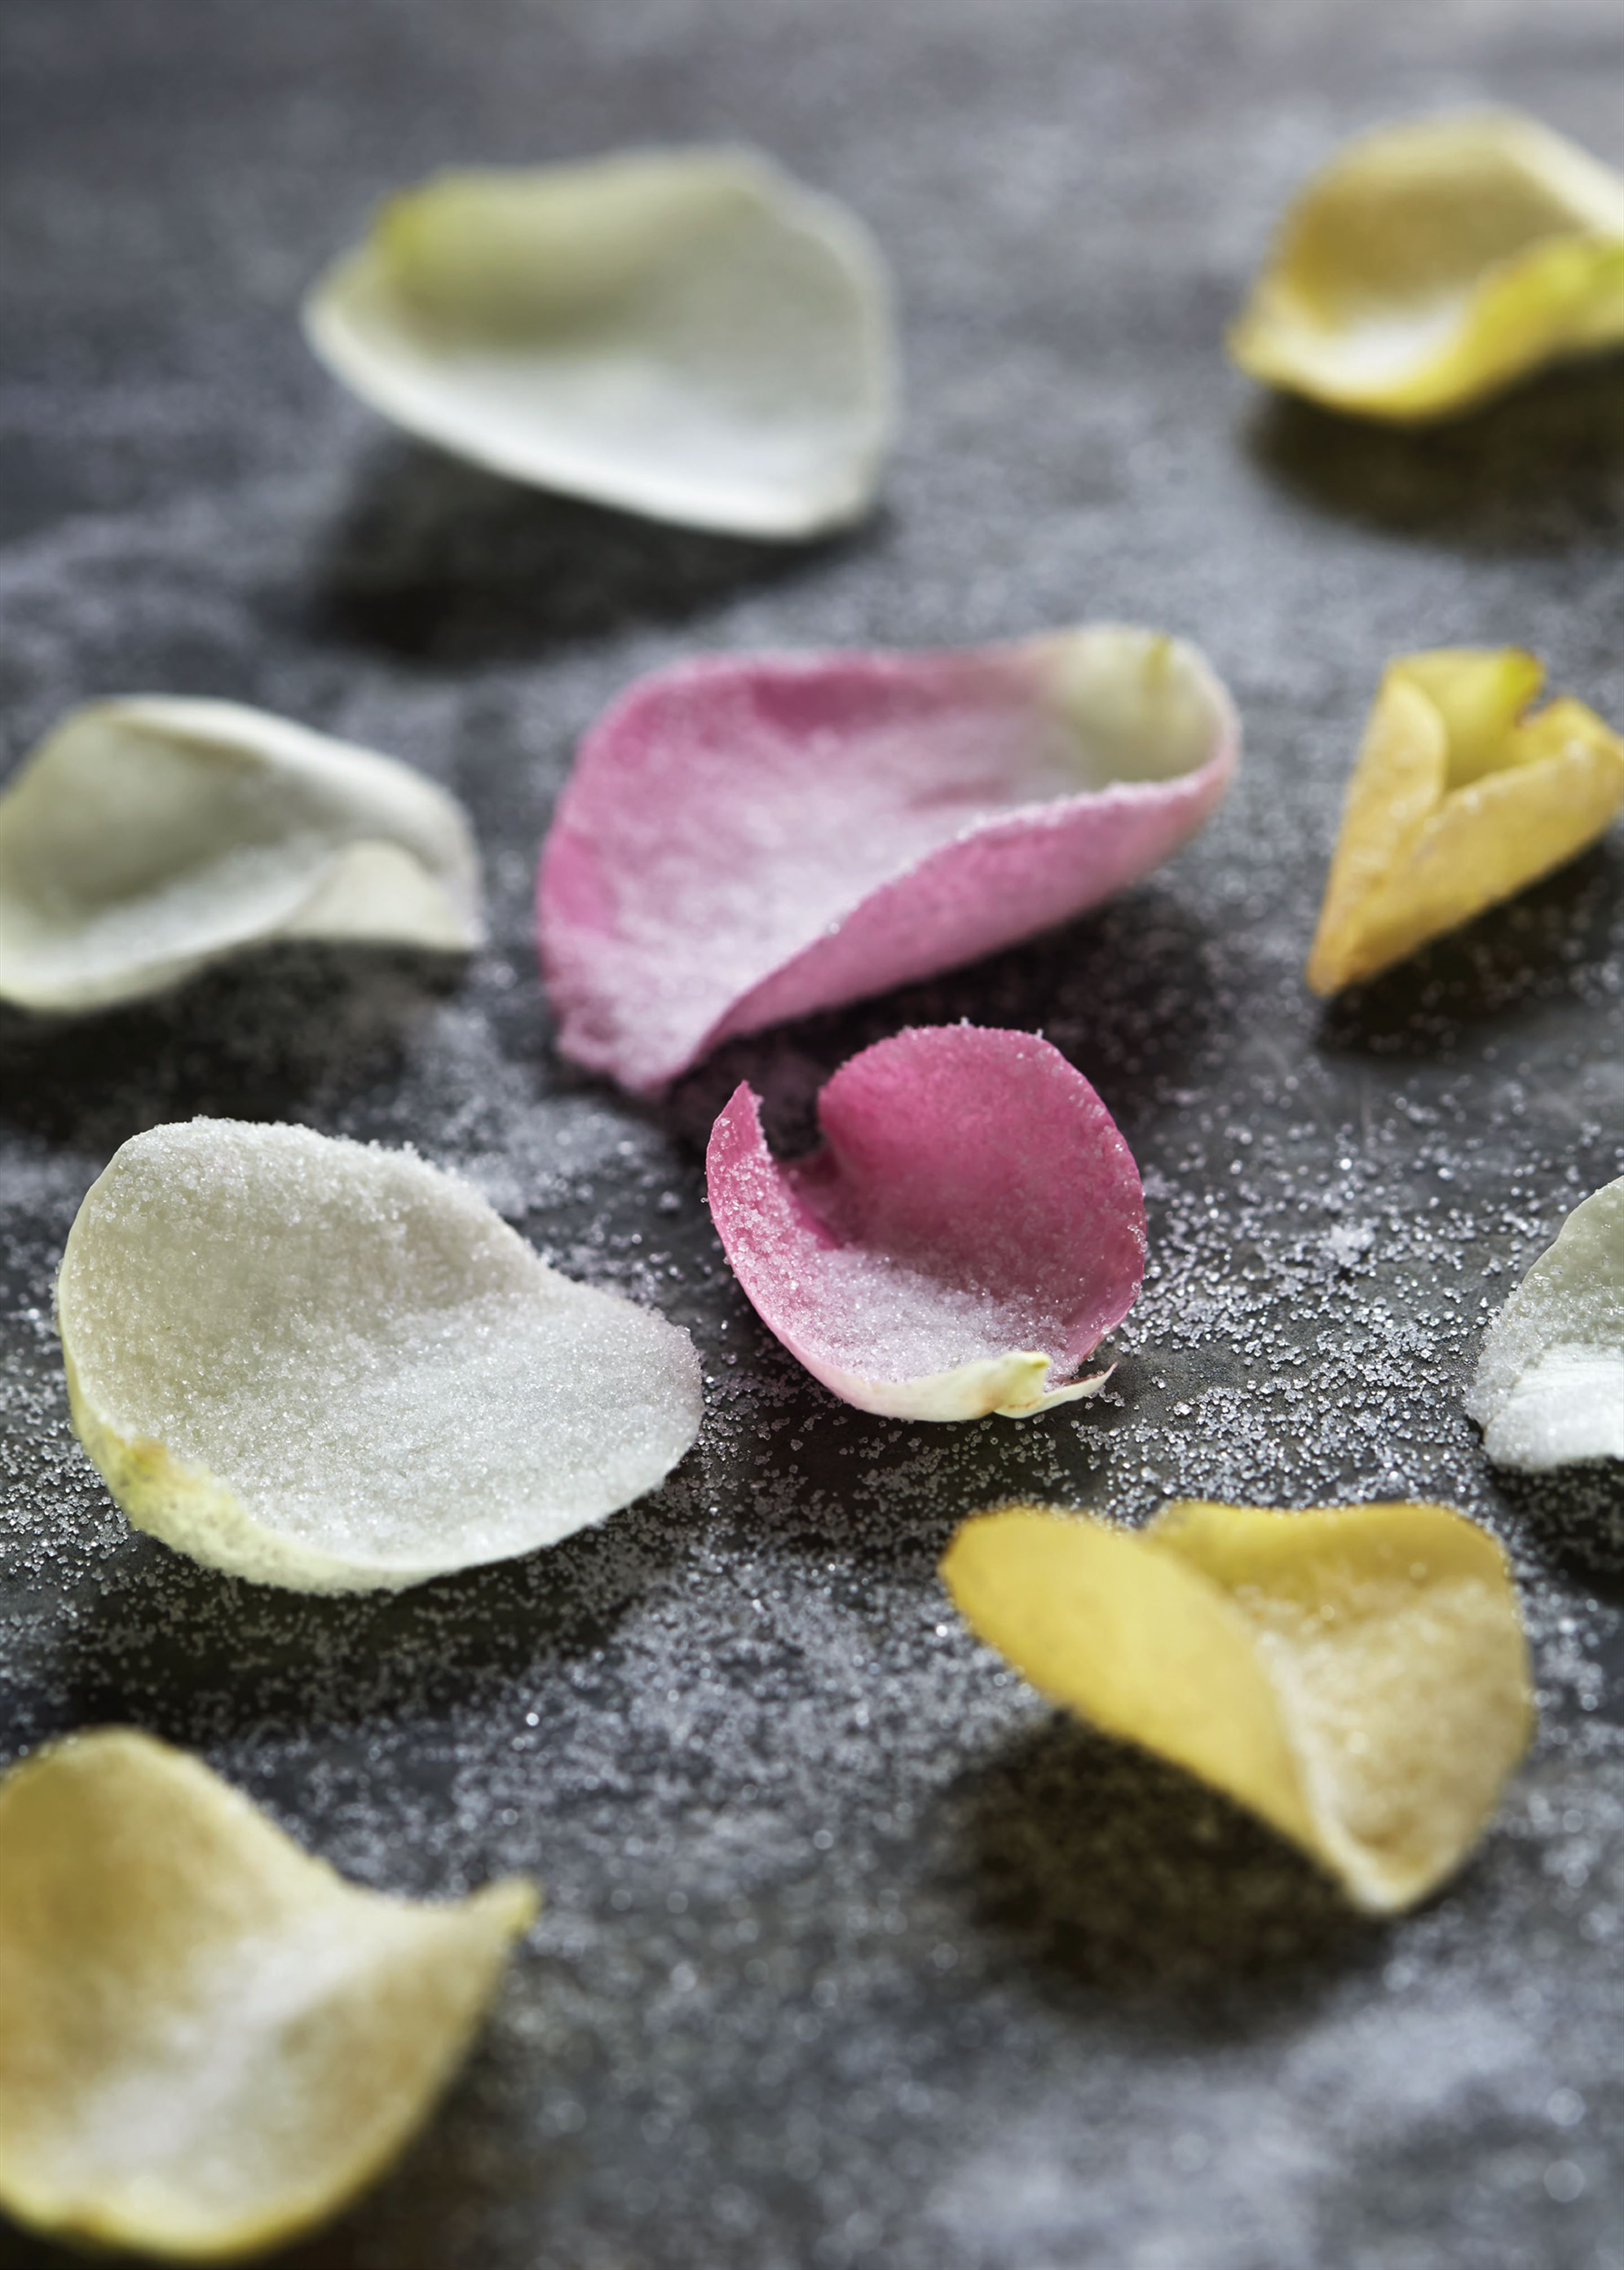 Crystallised rose petals